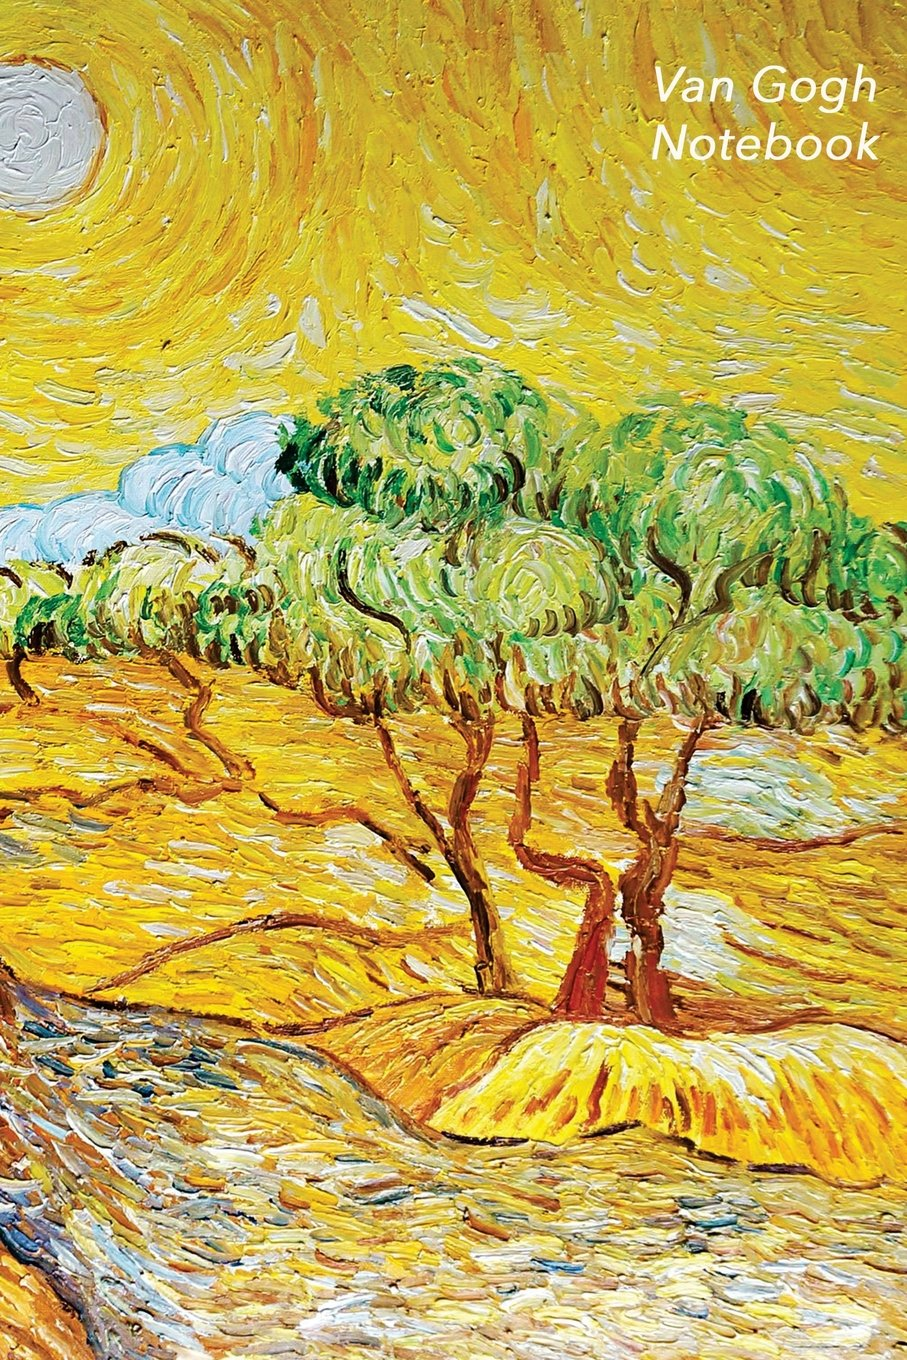 Van Gogh Notebook: Olive Trees With Yellow